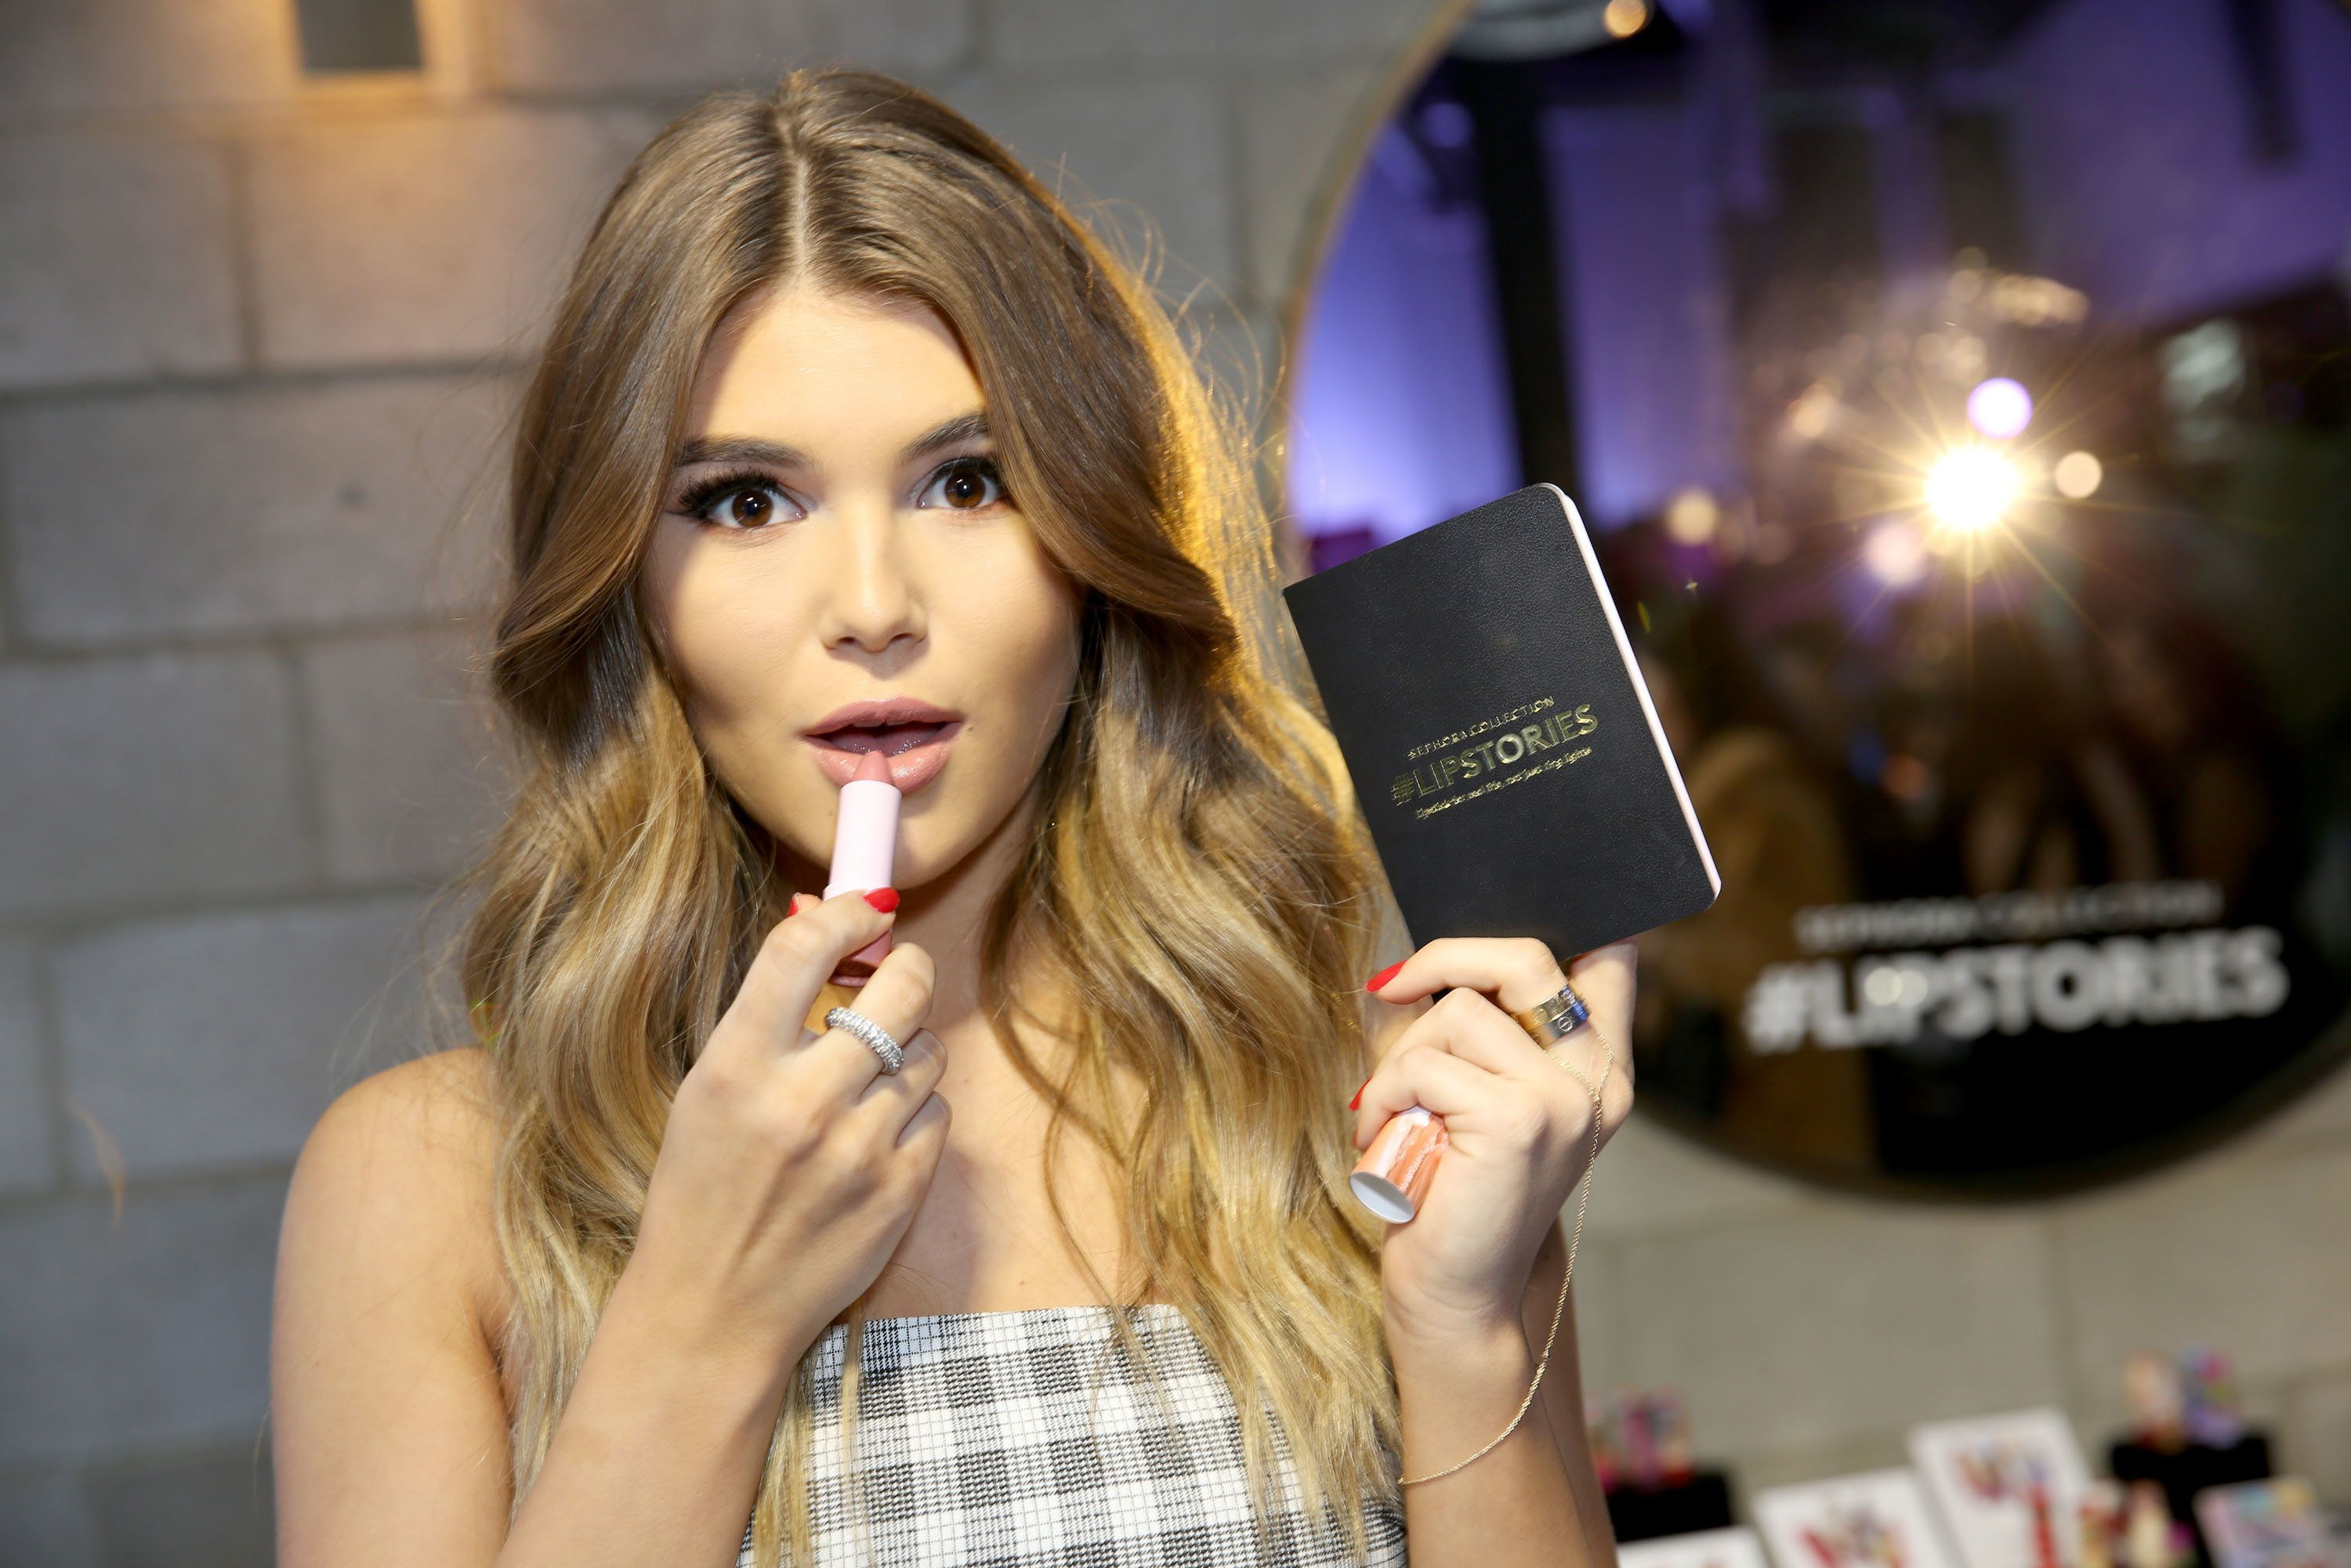 LOS ANGELES, CA - DECEMBER 12:  Sephora Collection 2018 Ambassador Olivia Jade attends the Sephora Collection #Lipstories launch at Sephora Studios LA on December 12, 2017 in Los Angeles, California.  (Photo by Rachel Murray/Getty Images for Sephora Collection)